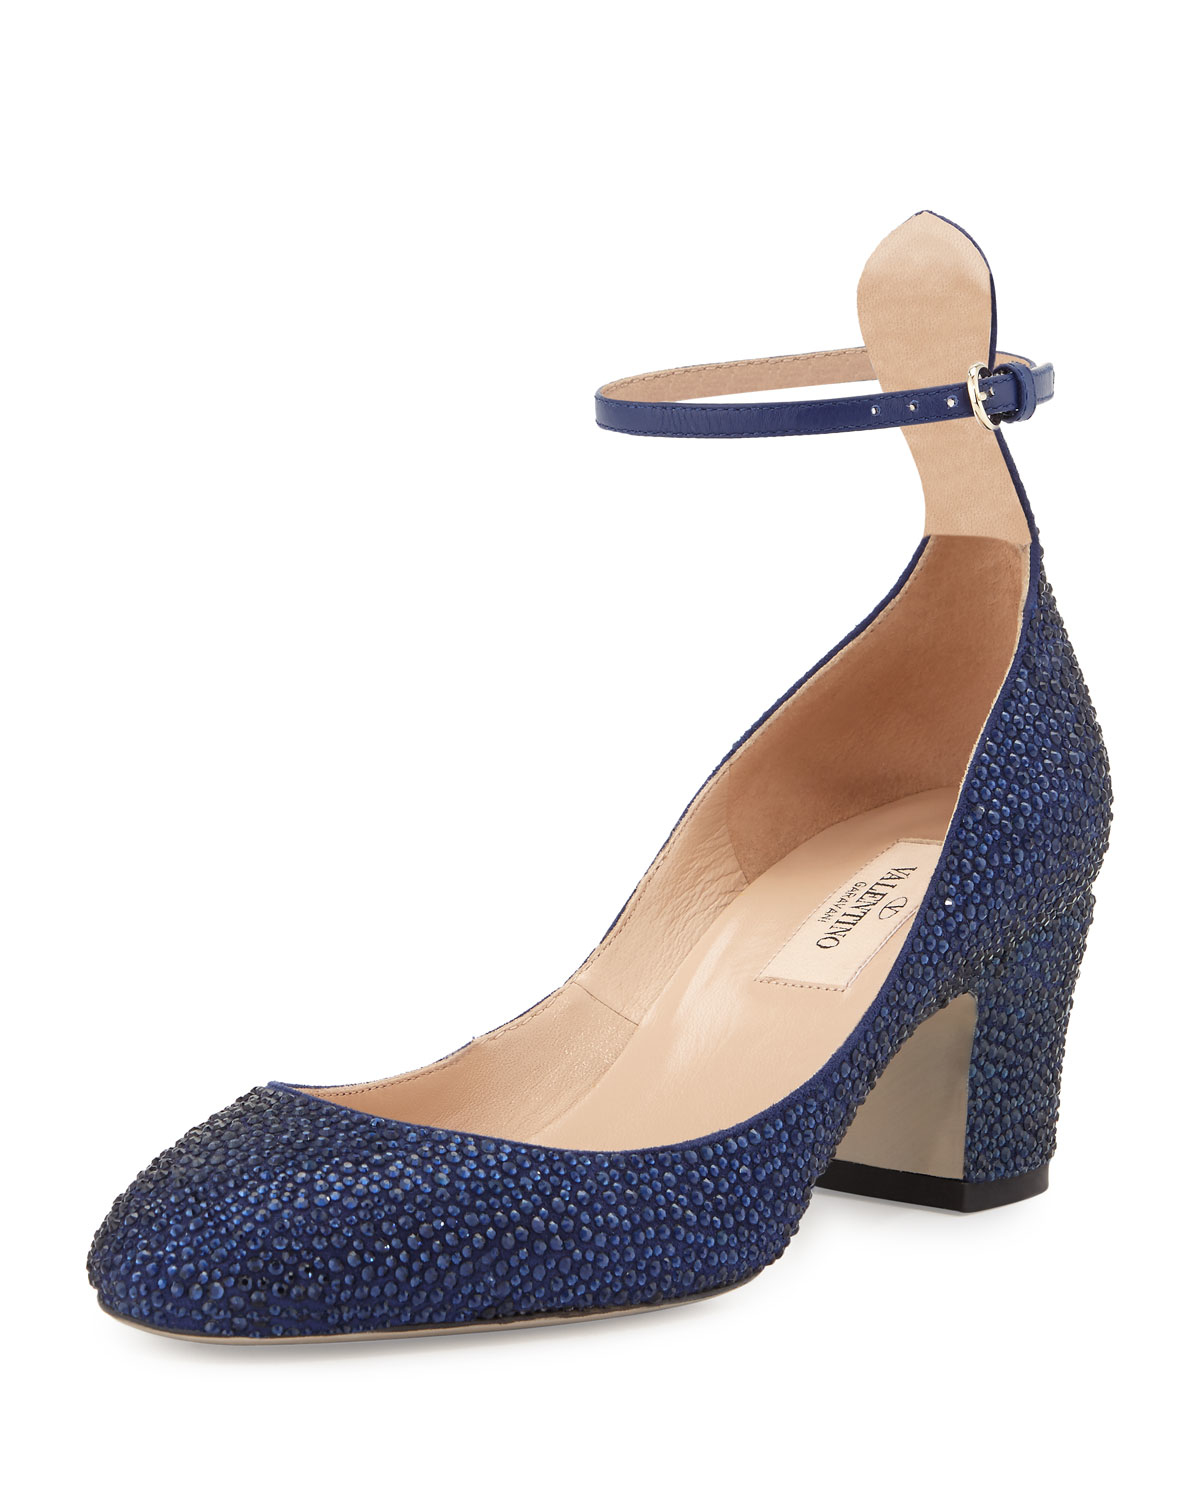 5f6f41eb7bf4 Lyst - Valentino Tango Crystallized Ankle-wrap Pump in Blue